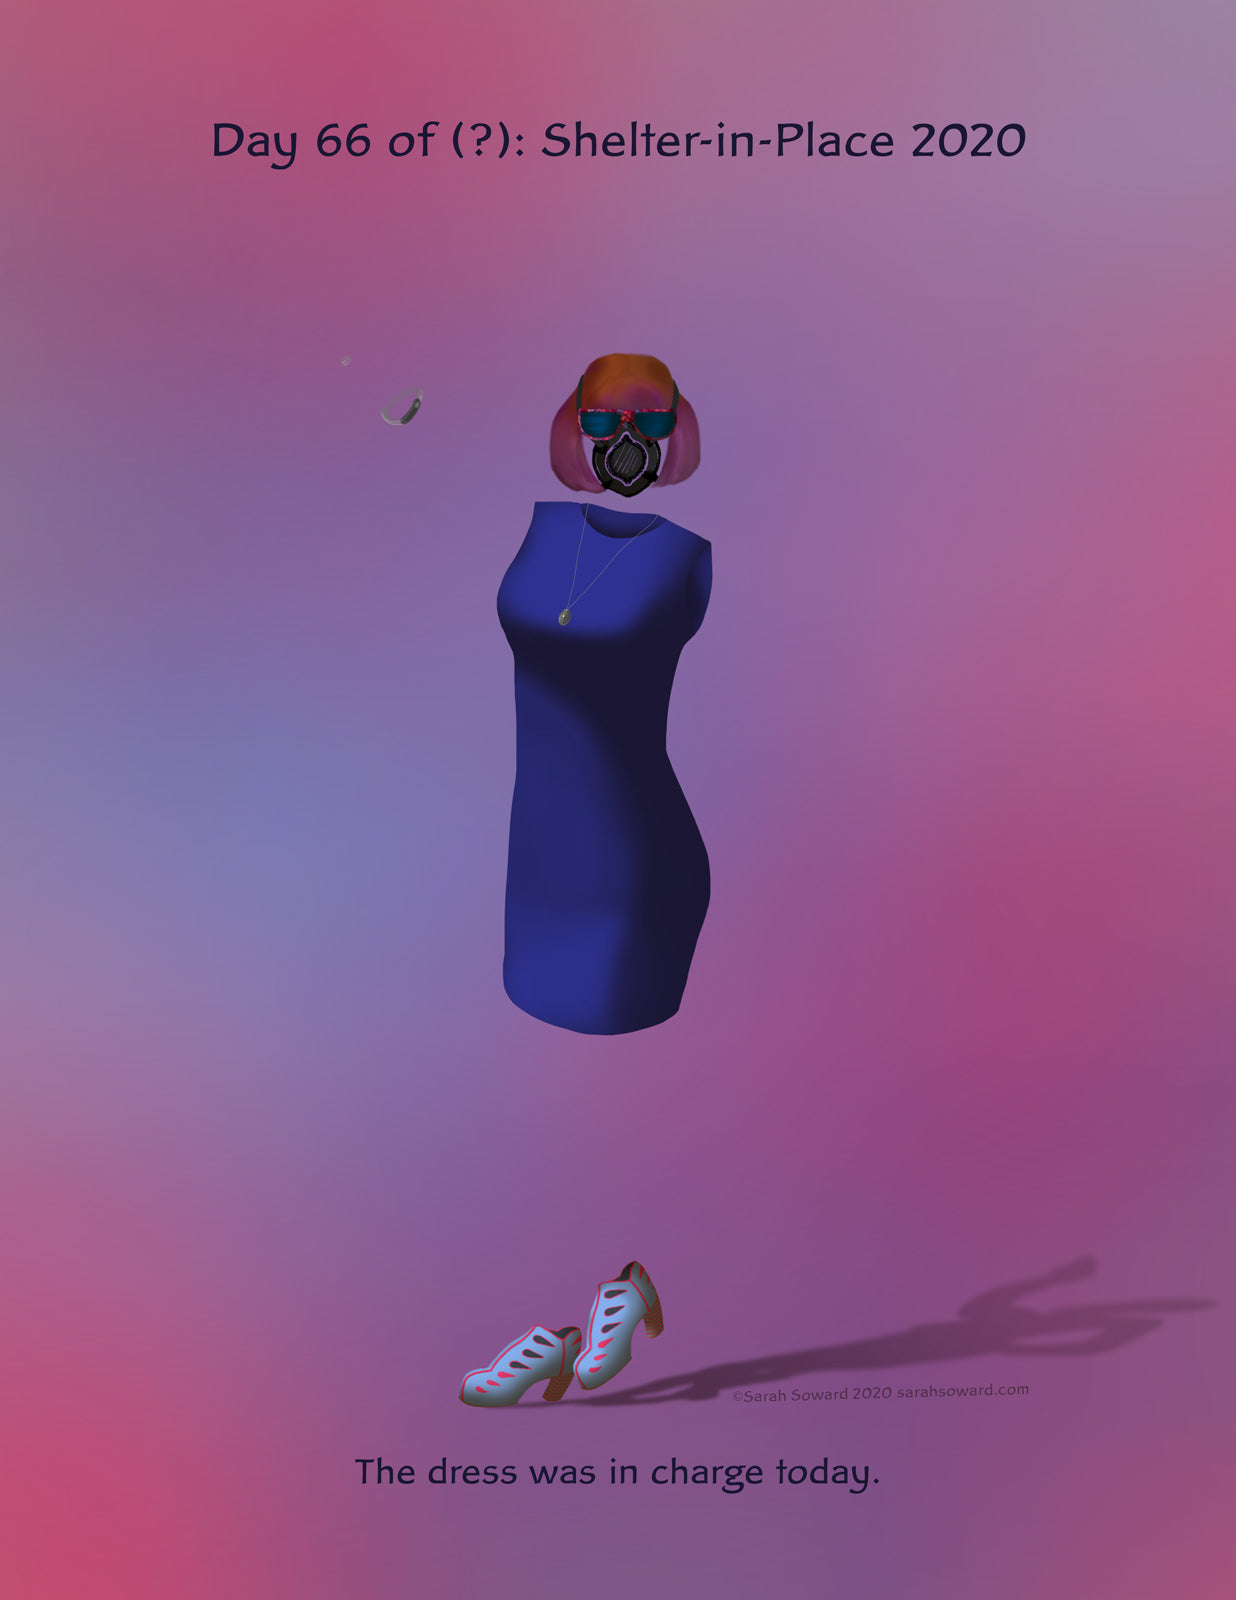 Image of an invisible woman wearing a no-nonsense blue dress, blue and hot pink Fluevog shoes, a breathing mask, and sunglasses. Her shadow shows her to be waving or thumbs-upping or similar. The text on the image reads  The dress was in charge today.